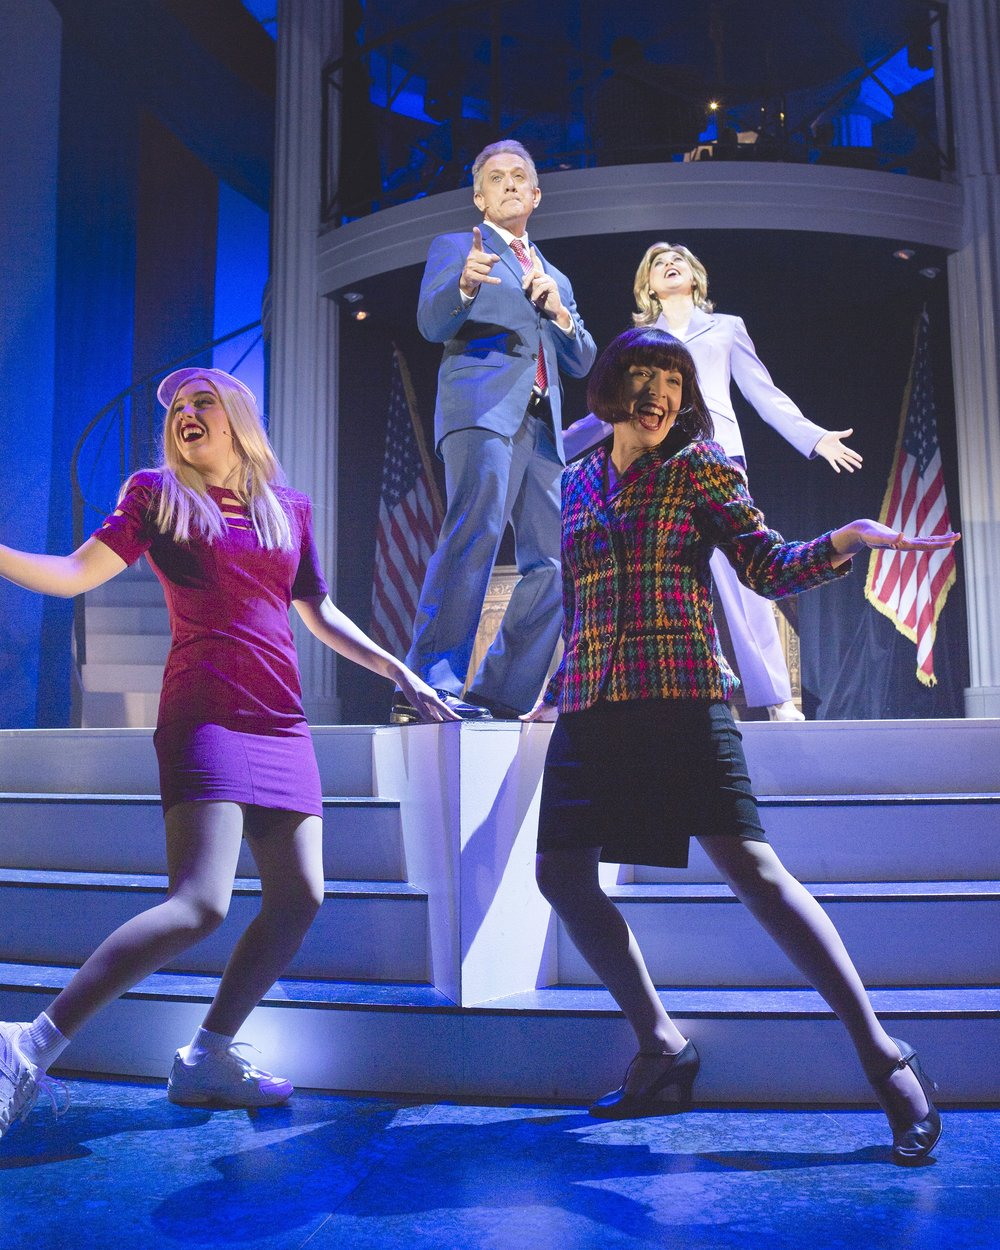 22  Megan Kozak, Simon Burke, Lisa Adam and Clare Moore. Clinton The Musical. image by Daniel James Grant..jpg